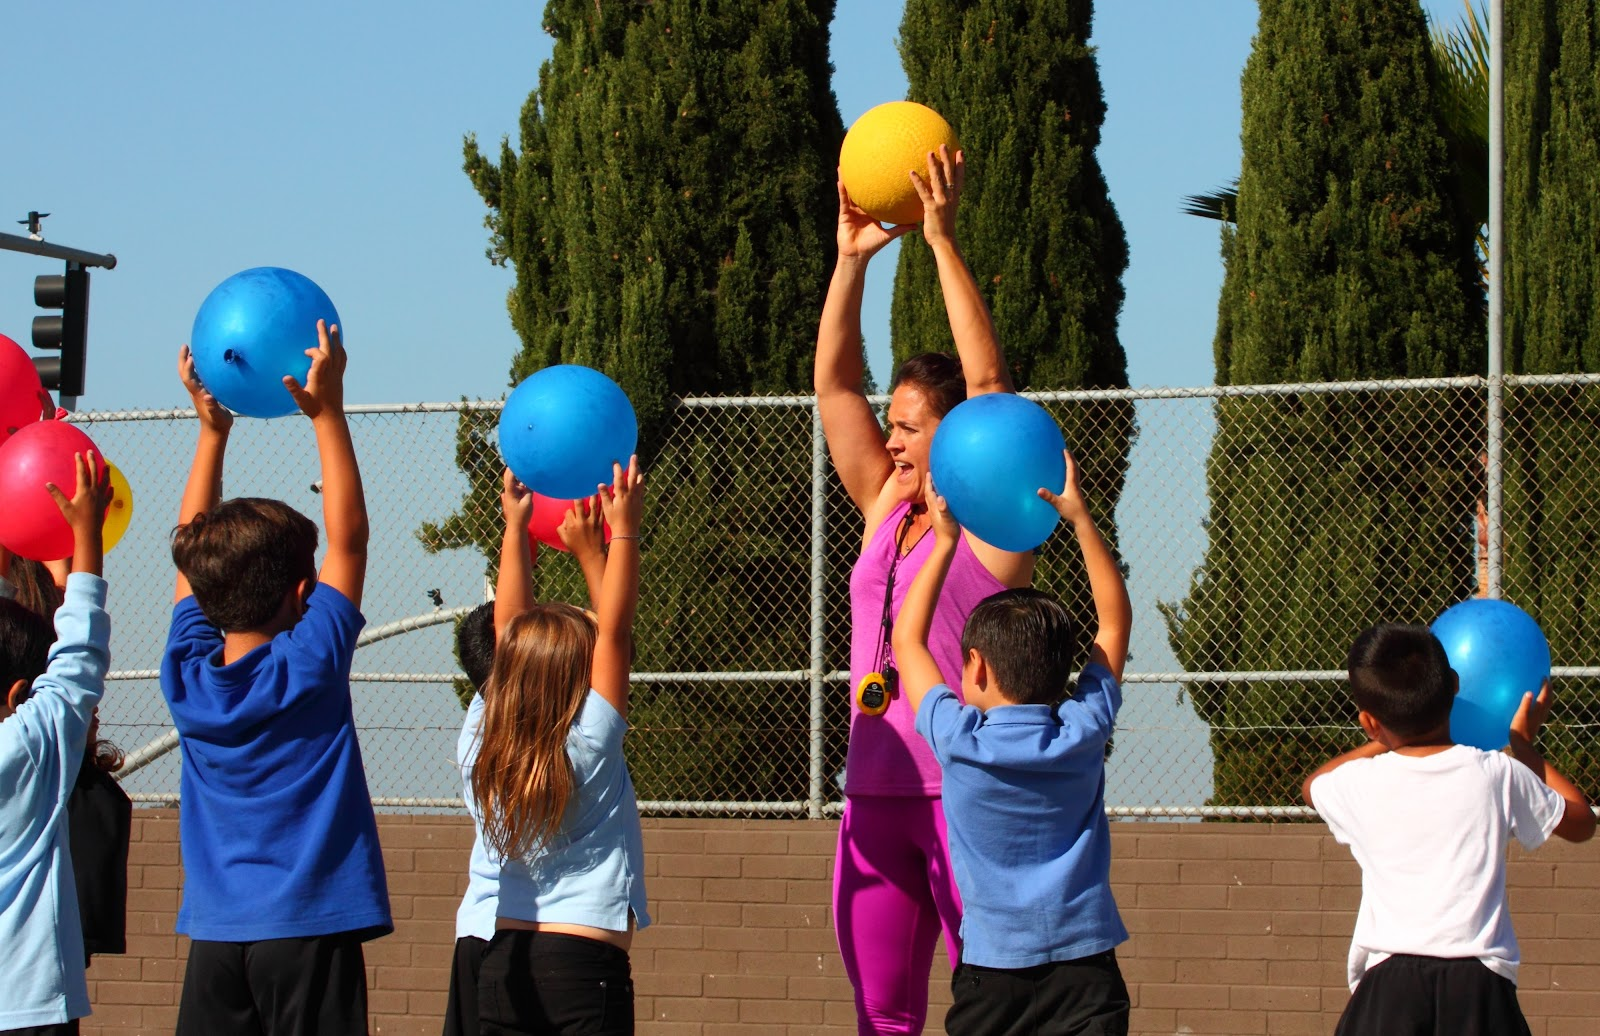 Empower Language Academy coach holds a ball in the air and leads five students in a CrossFit Kids activity